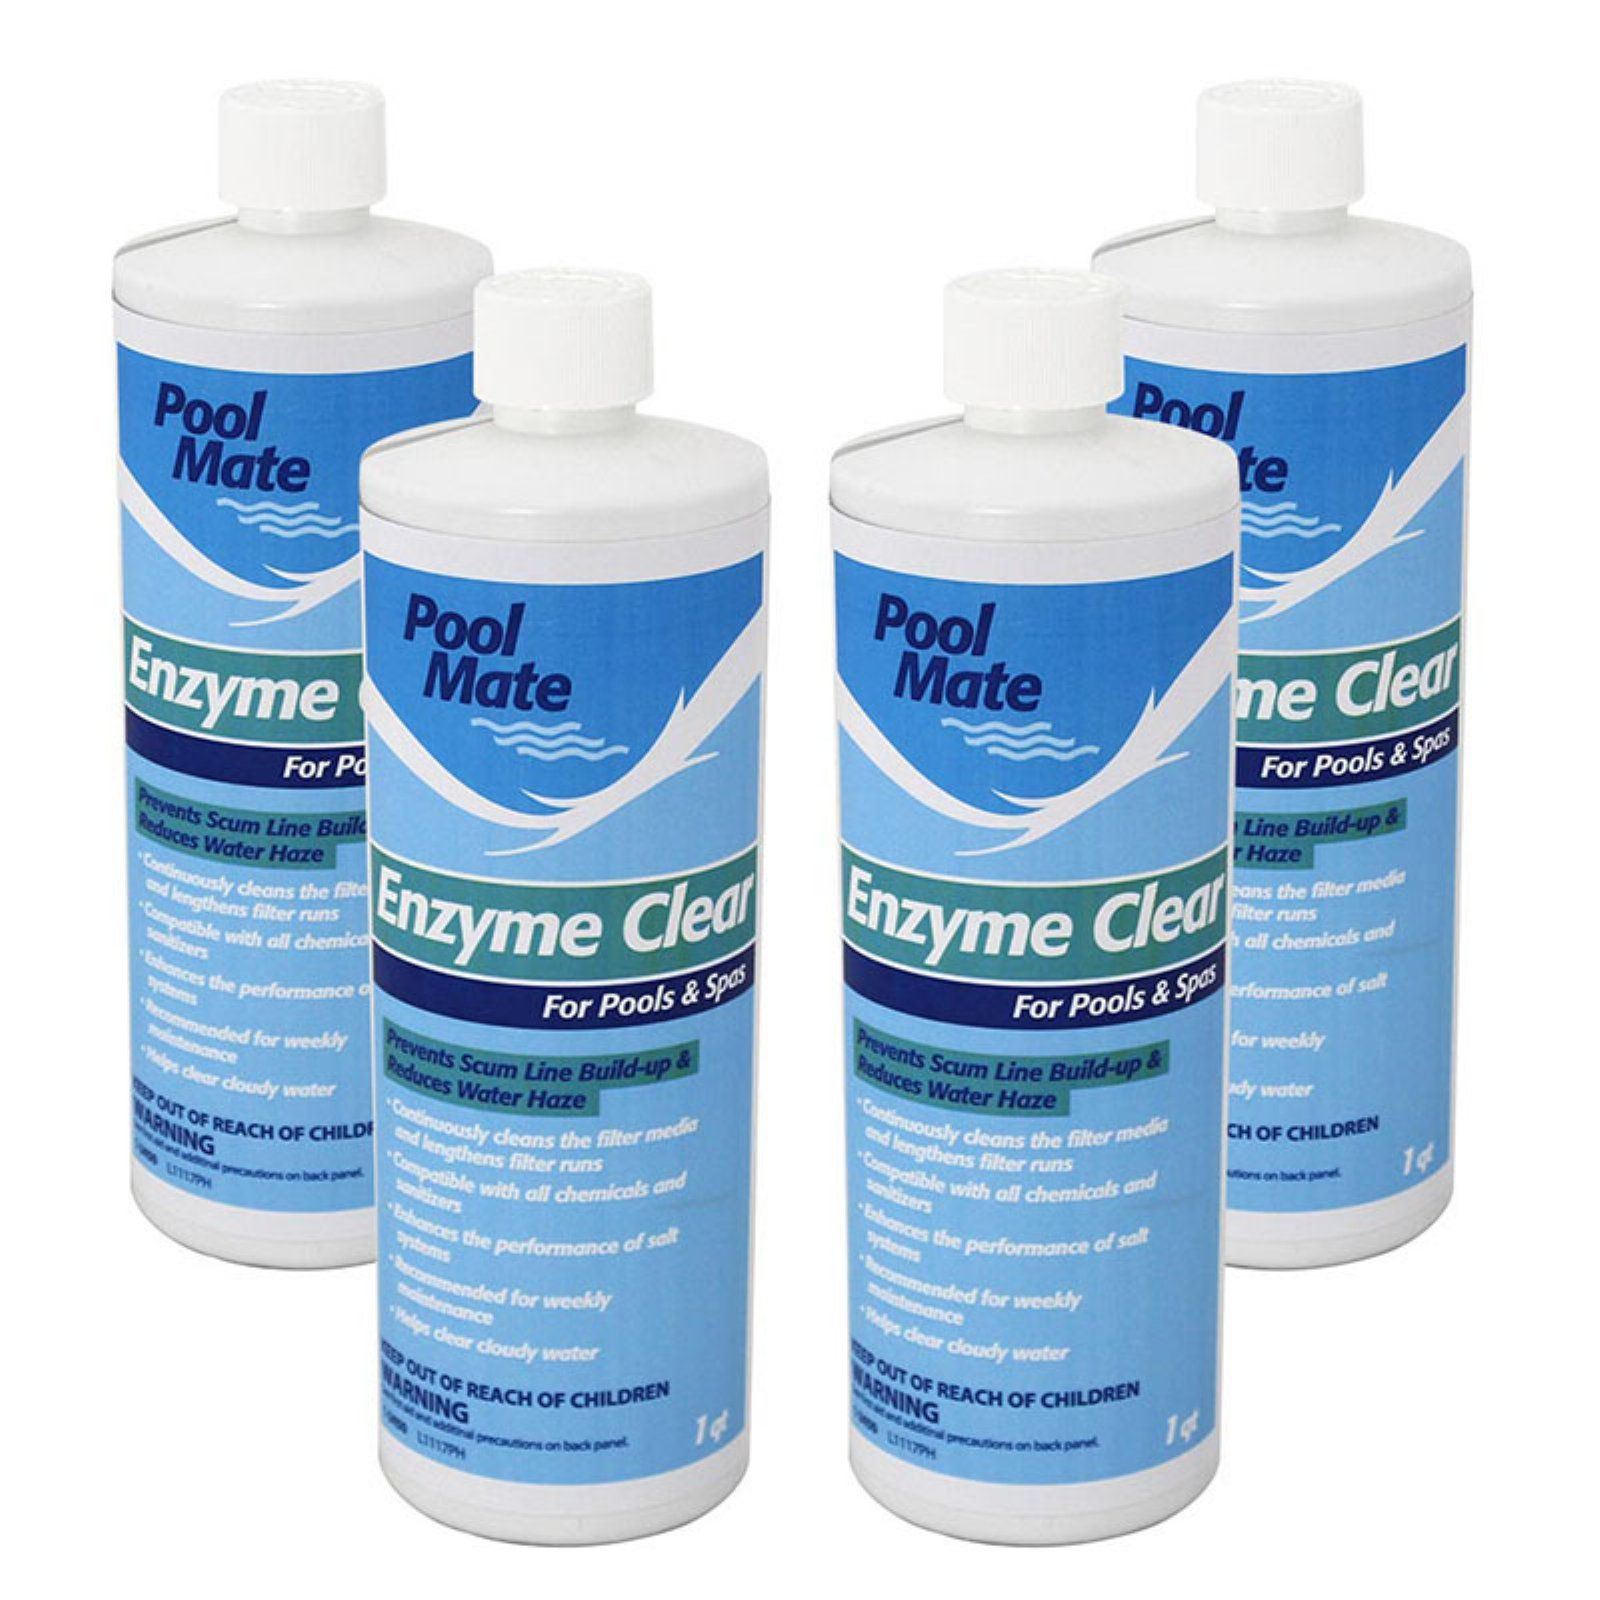 Pool Mate 1 qt. Enzyme Clear for Swimming Pools and Spas ...